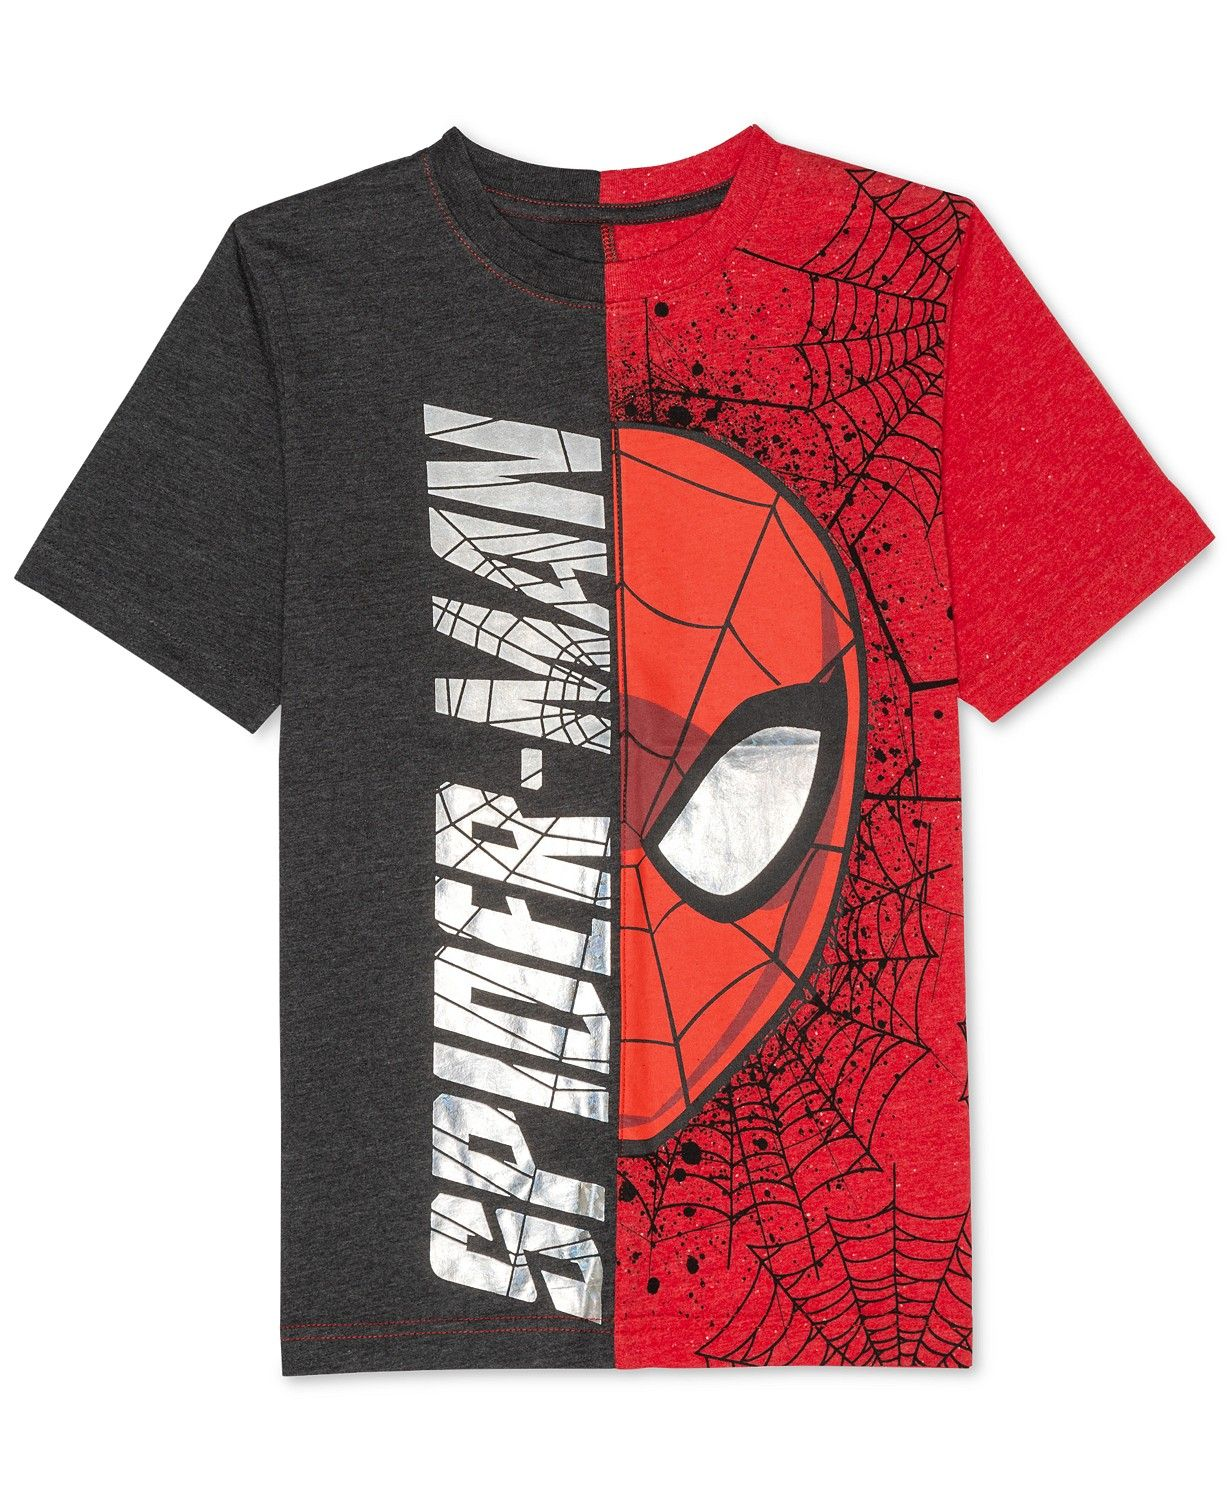 21ab8d7a0 Marvel Big Boys Spider-Man Graphic-Print T-Shirt - Shirts & Tees - Kids -  Macy's